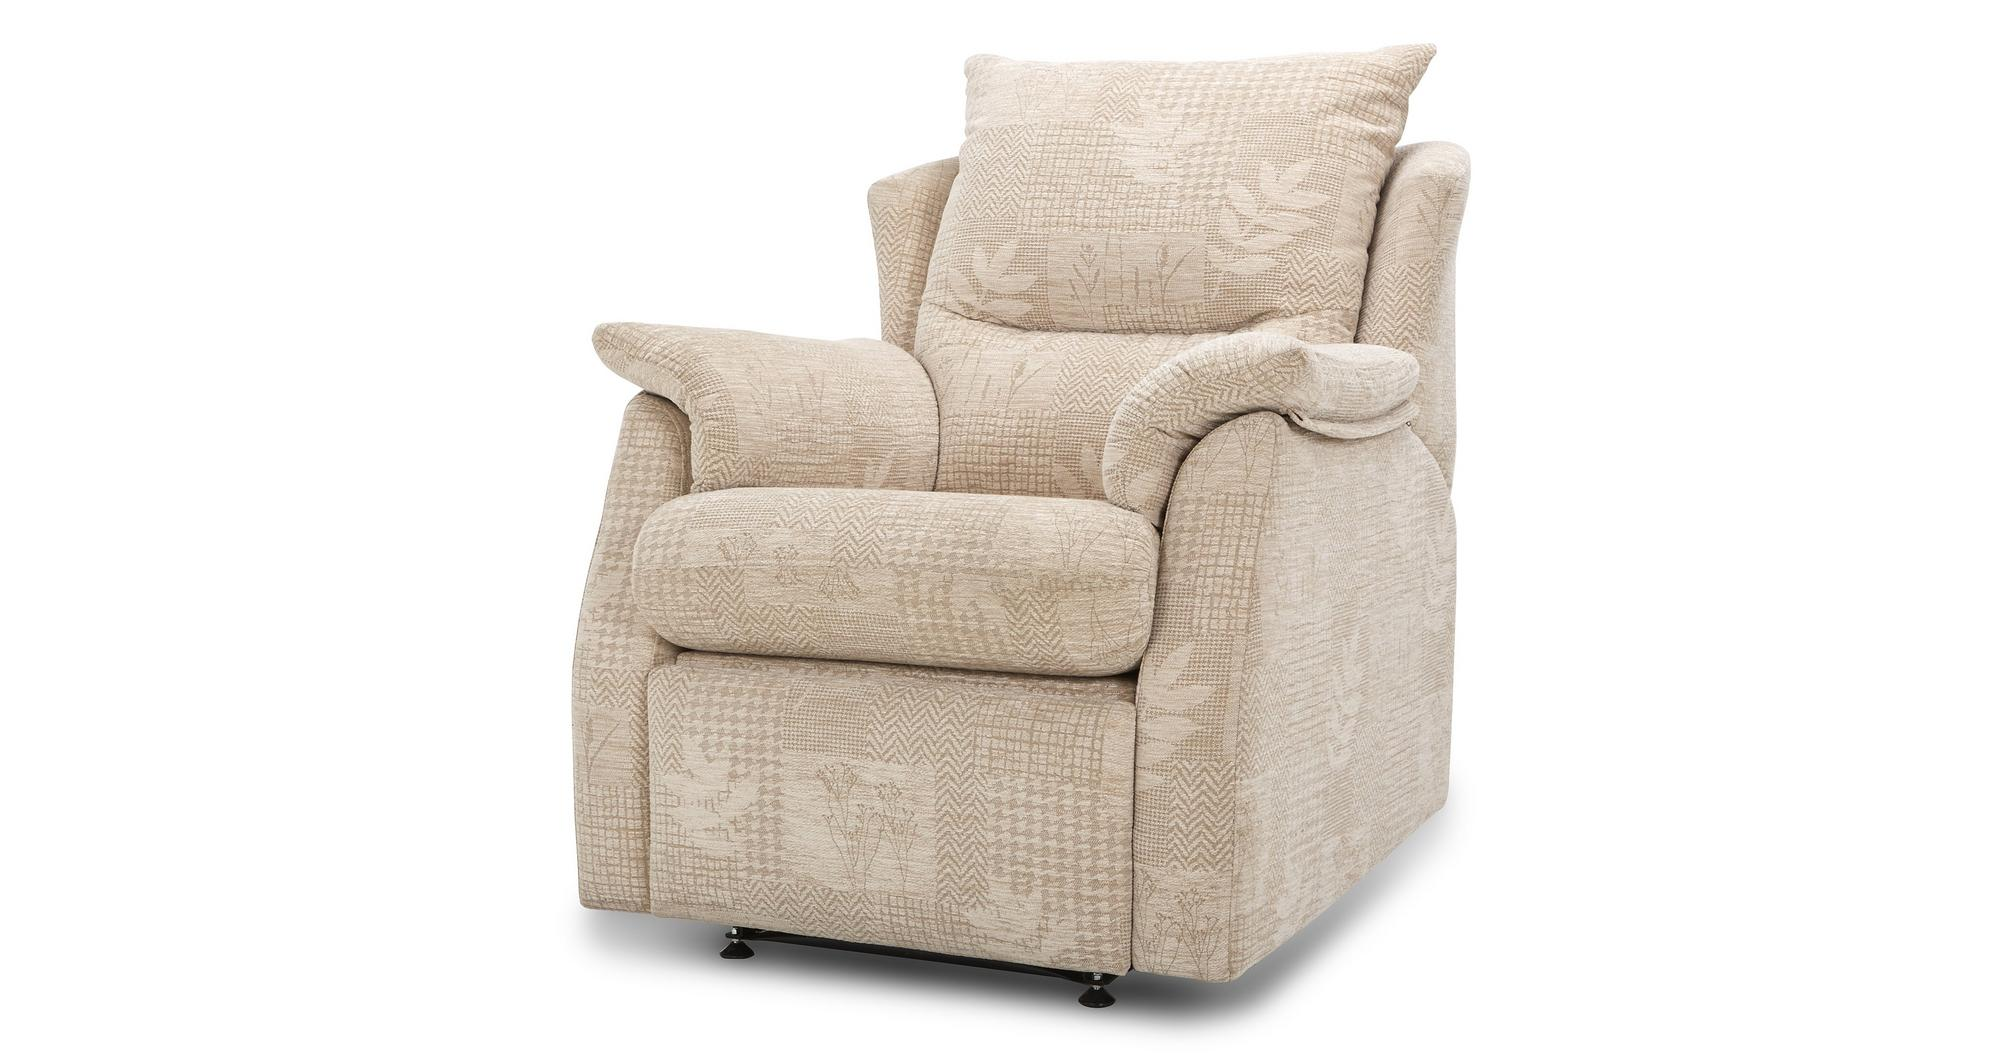 Dfs stow cream fabric small 2 seater sofa and manual for Small fabric chair